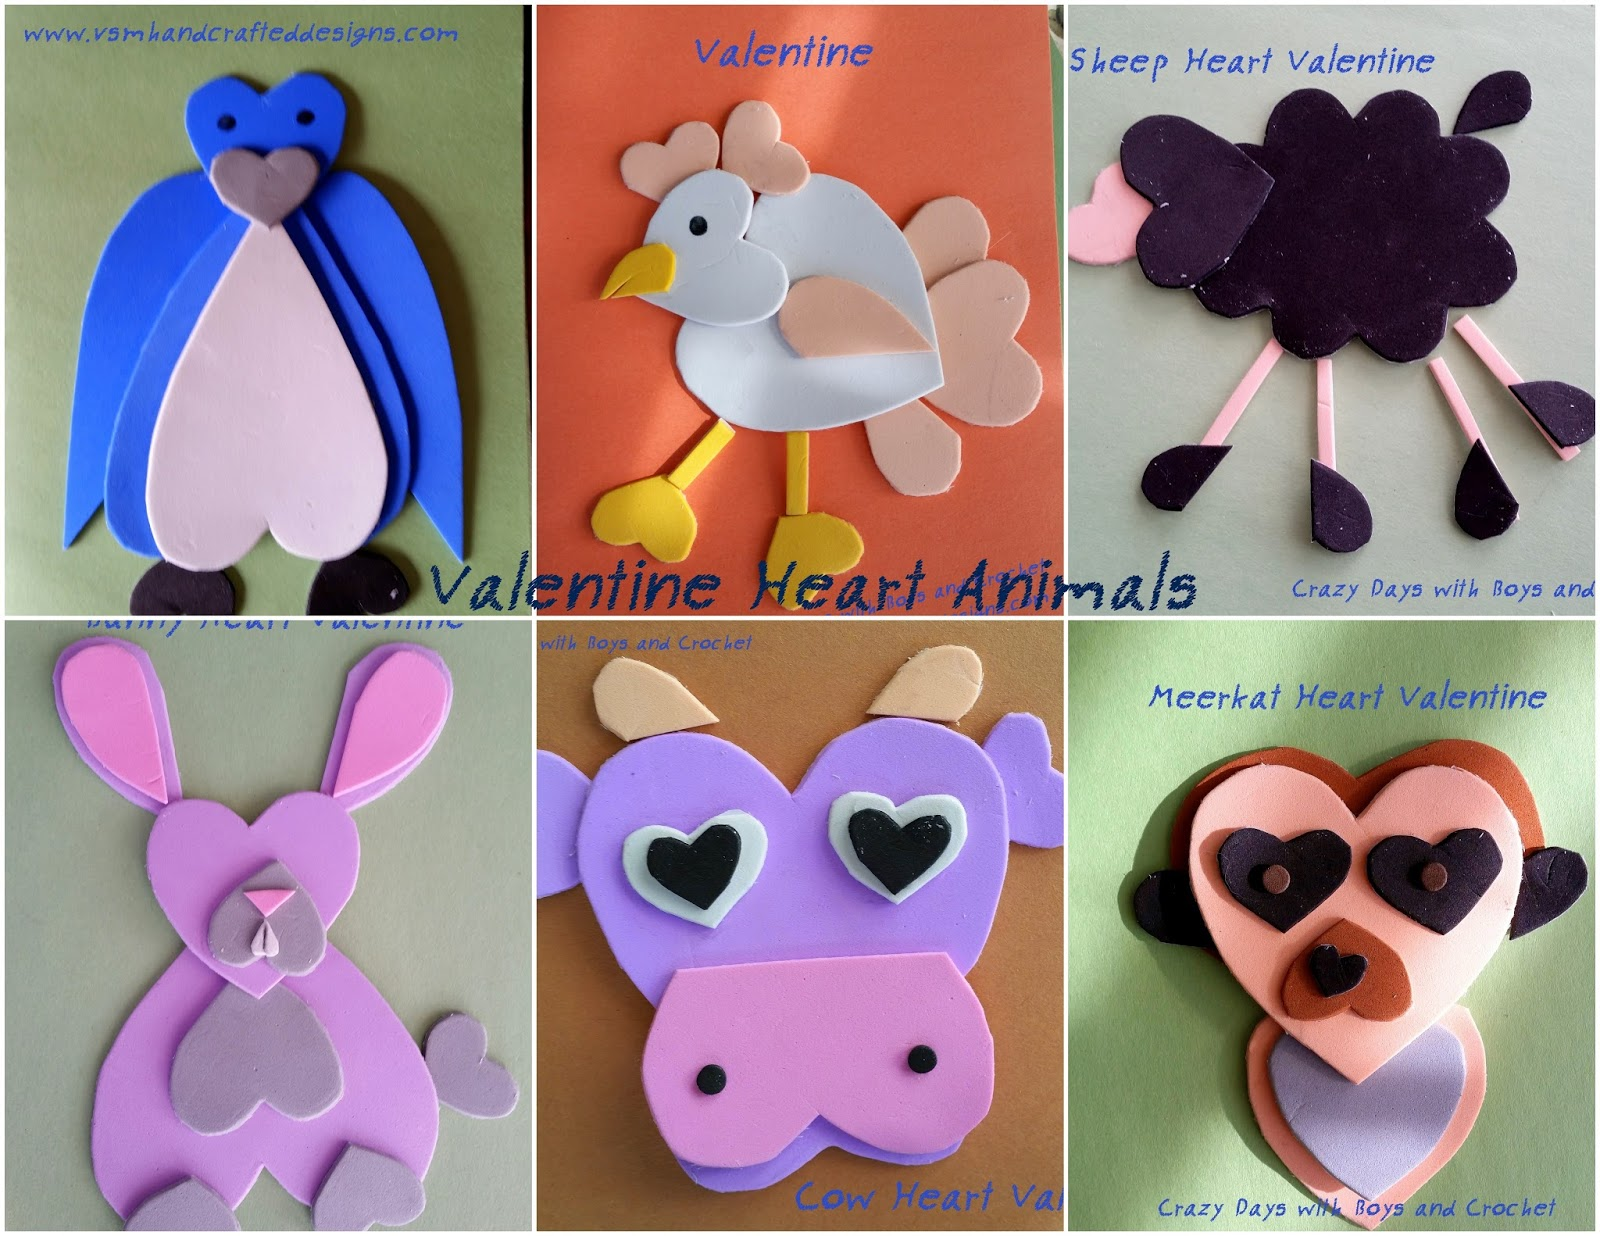 VSM Handcrafted Designs: More Heart Animal Valentines